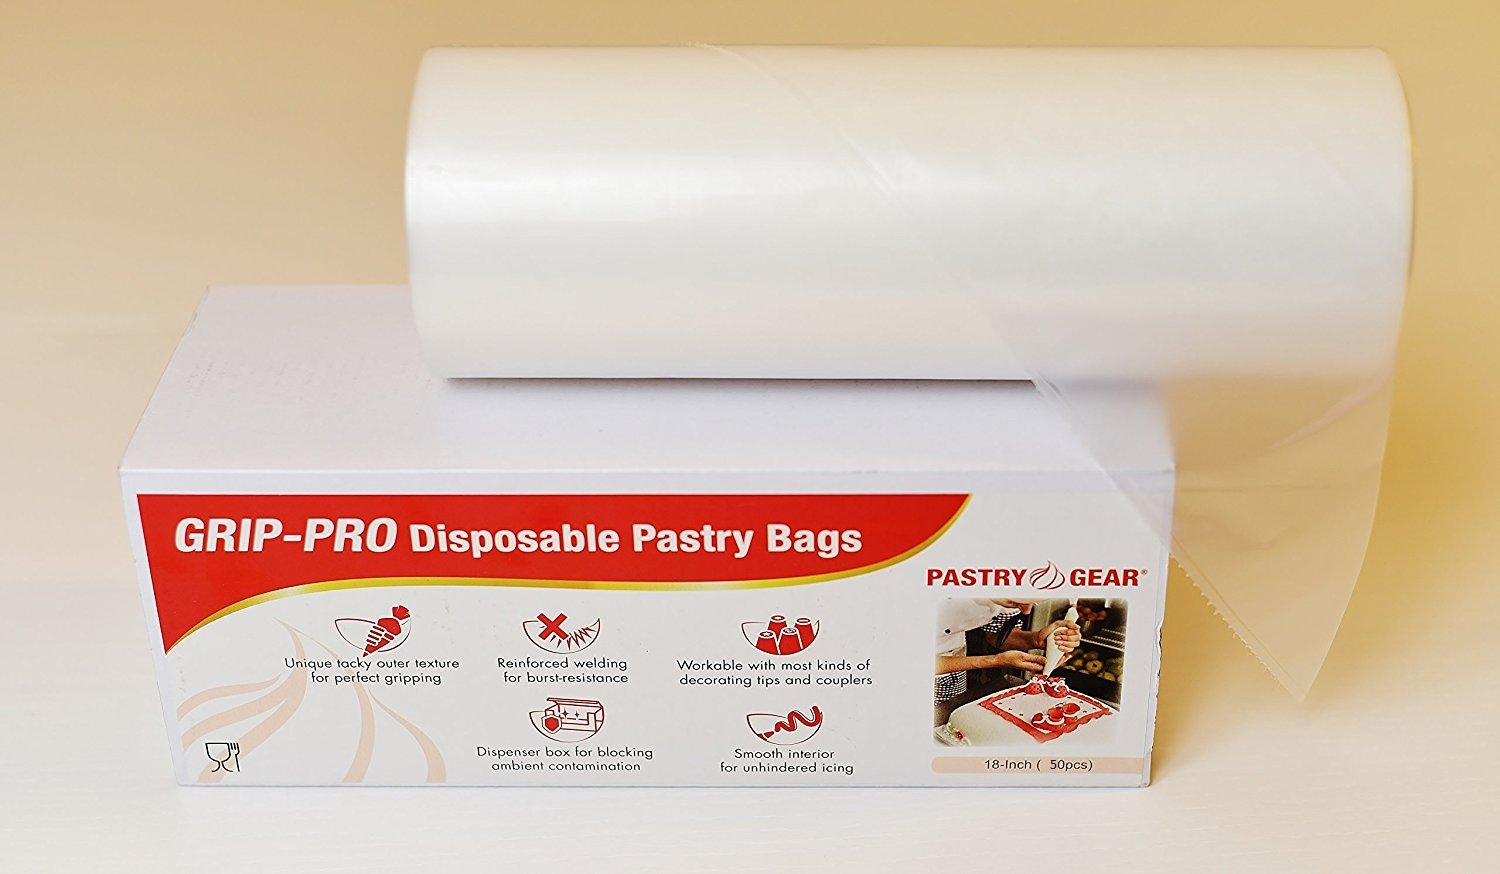 PastryGear Grip-Pro 18-inch Anti-slip Ultra Thick Disposable Pastry/Piping Bags with Dispenser (Roll of 50 Pcs)